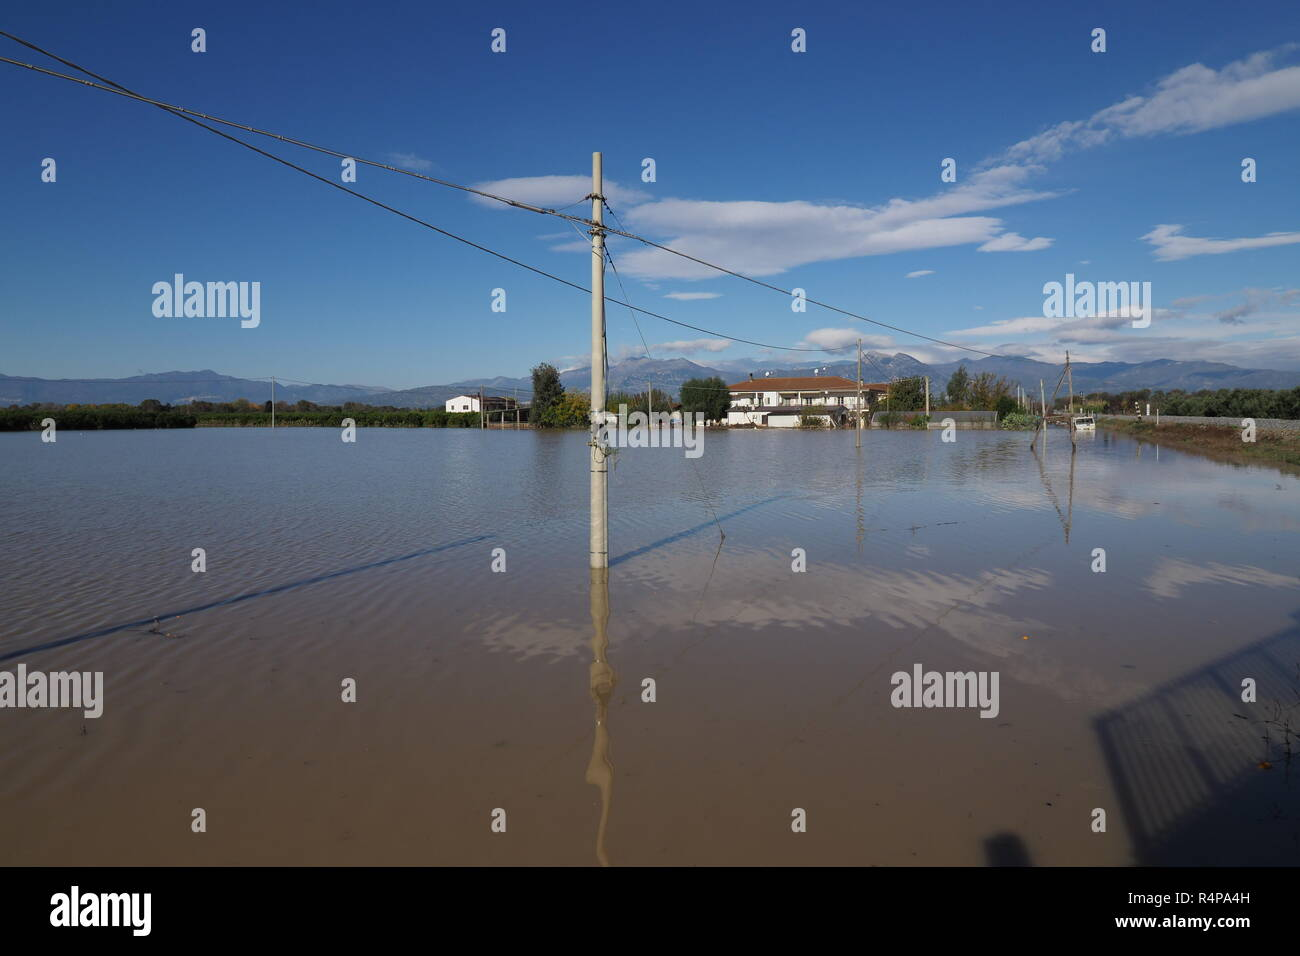 Corigliano Rossano flooding of the Crati in Calabria due to the collapse of an embankment. Huge damage, more than 40 families evacuated and hundreds and hundreds of drowned dead animals. 11/28/2018, Corigliano Rossano, Italy - Stock Image